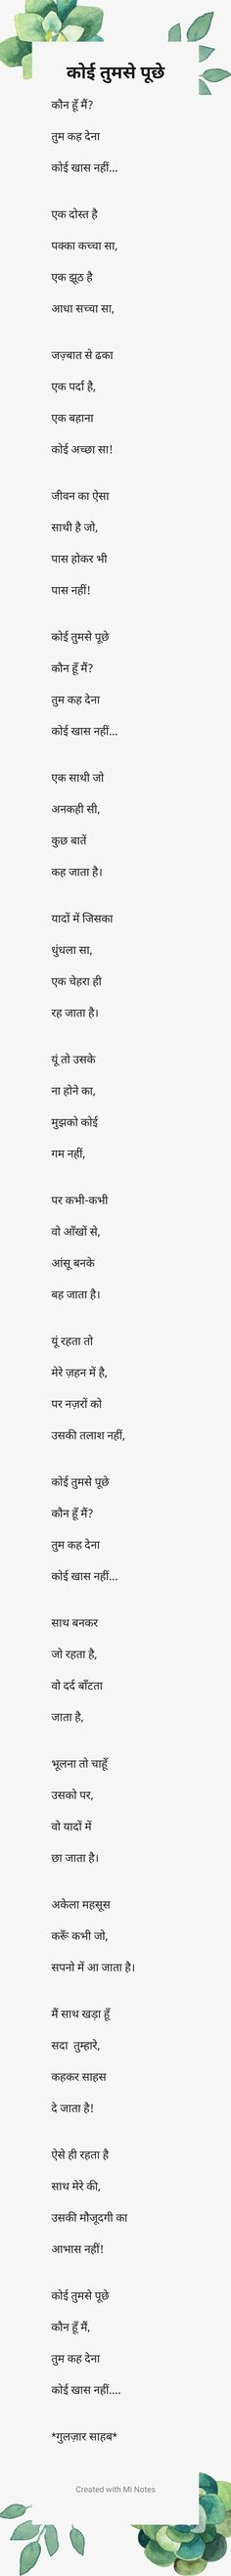 33 Best Poetry hindi images in 2019 | Hindi quotes, Love